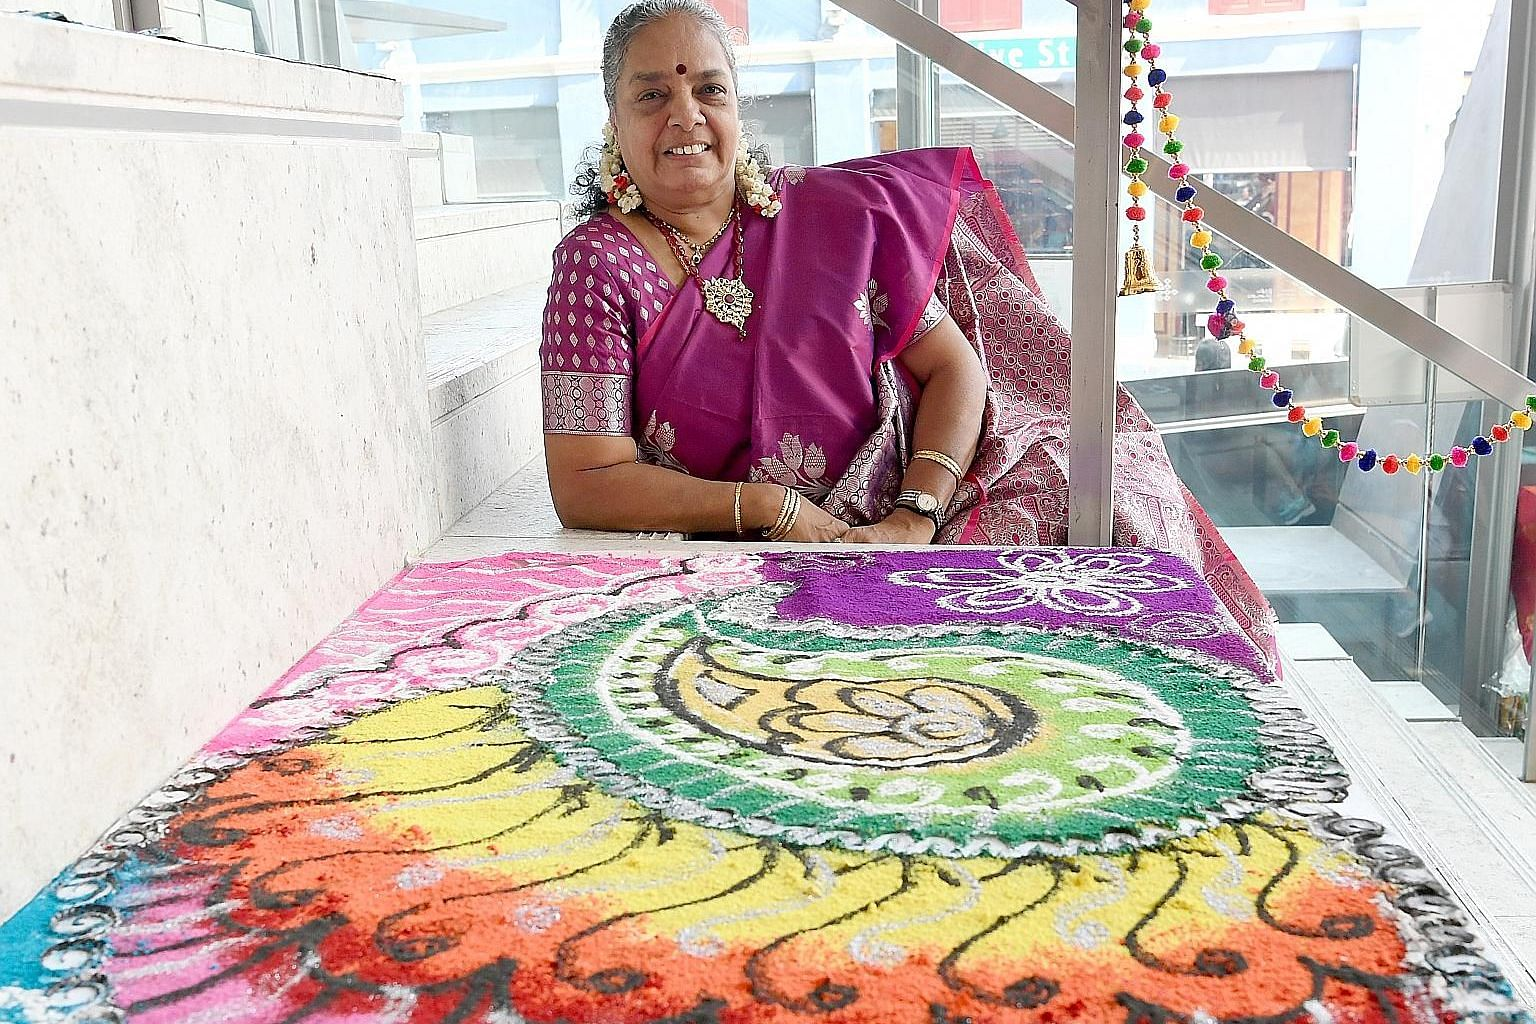 Rangoli artist Vijaya Mohan, 60, plans to apply for The Stewards of Singapore's Intangible Cultural Heritage Award. She has been teaching and creating traditional rangoli designs by hand using powdered rice, coloured sand and innovative materials, su